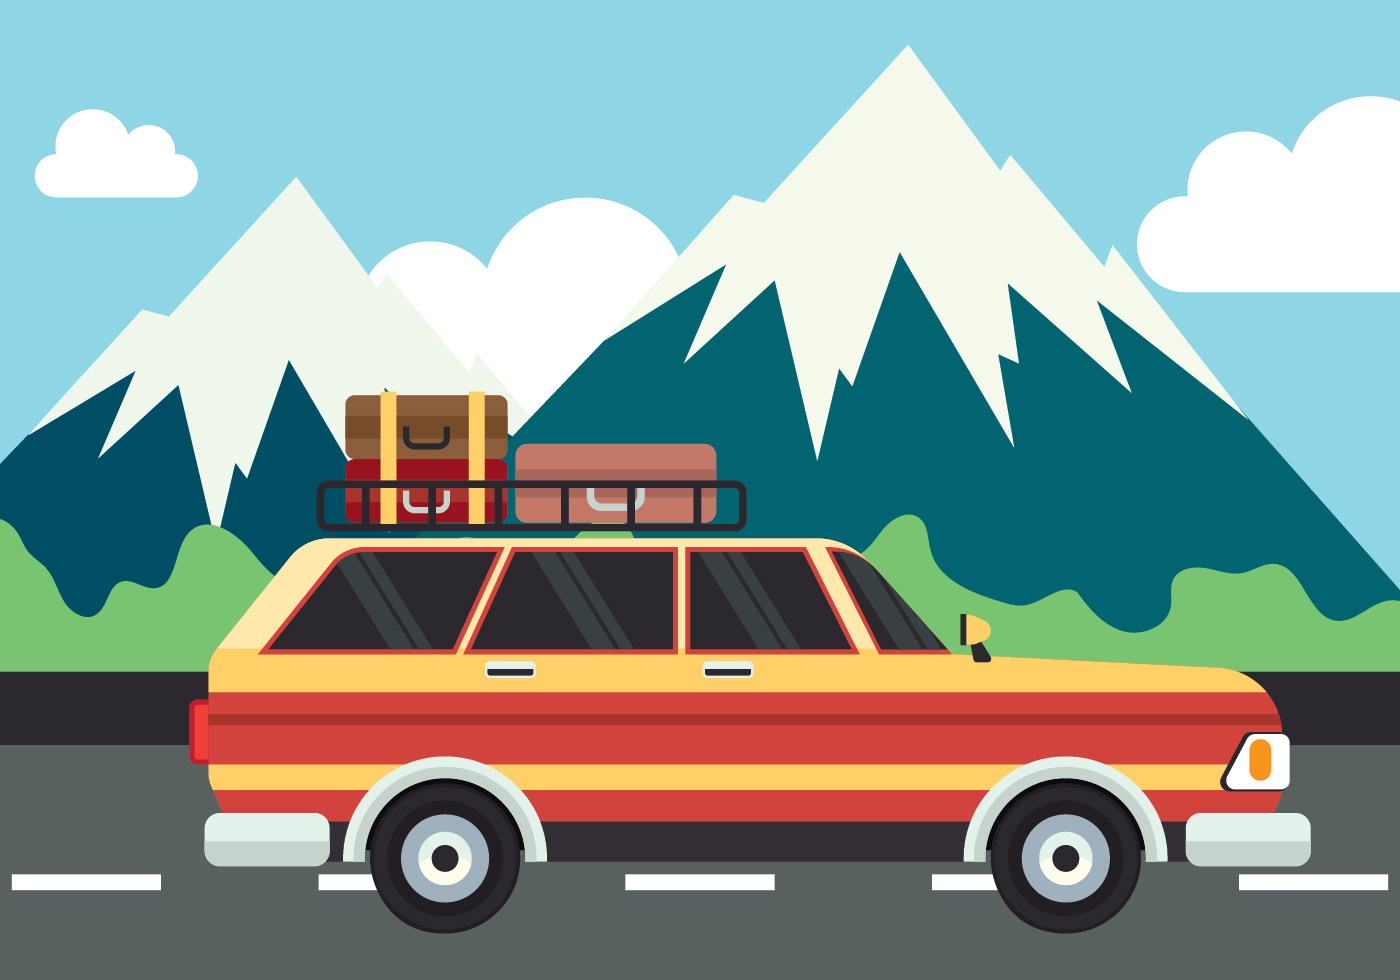 Road Trip Vector Illustration Download Free Vector Art Stock Graphics Amp Images